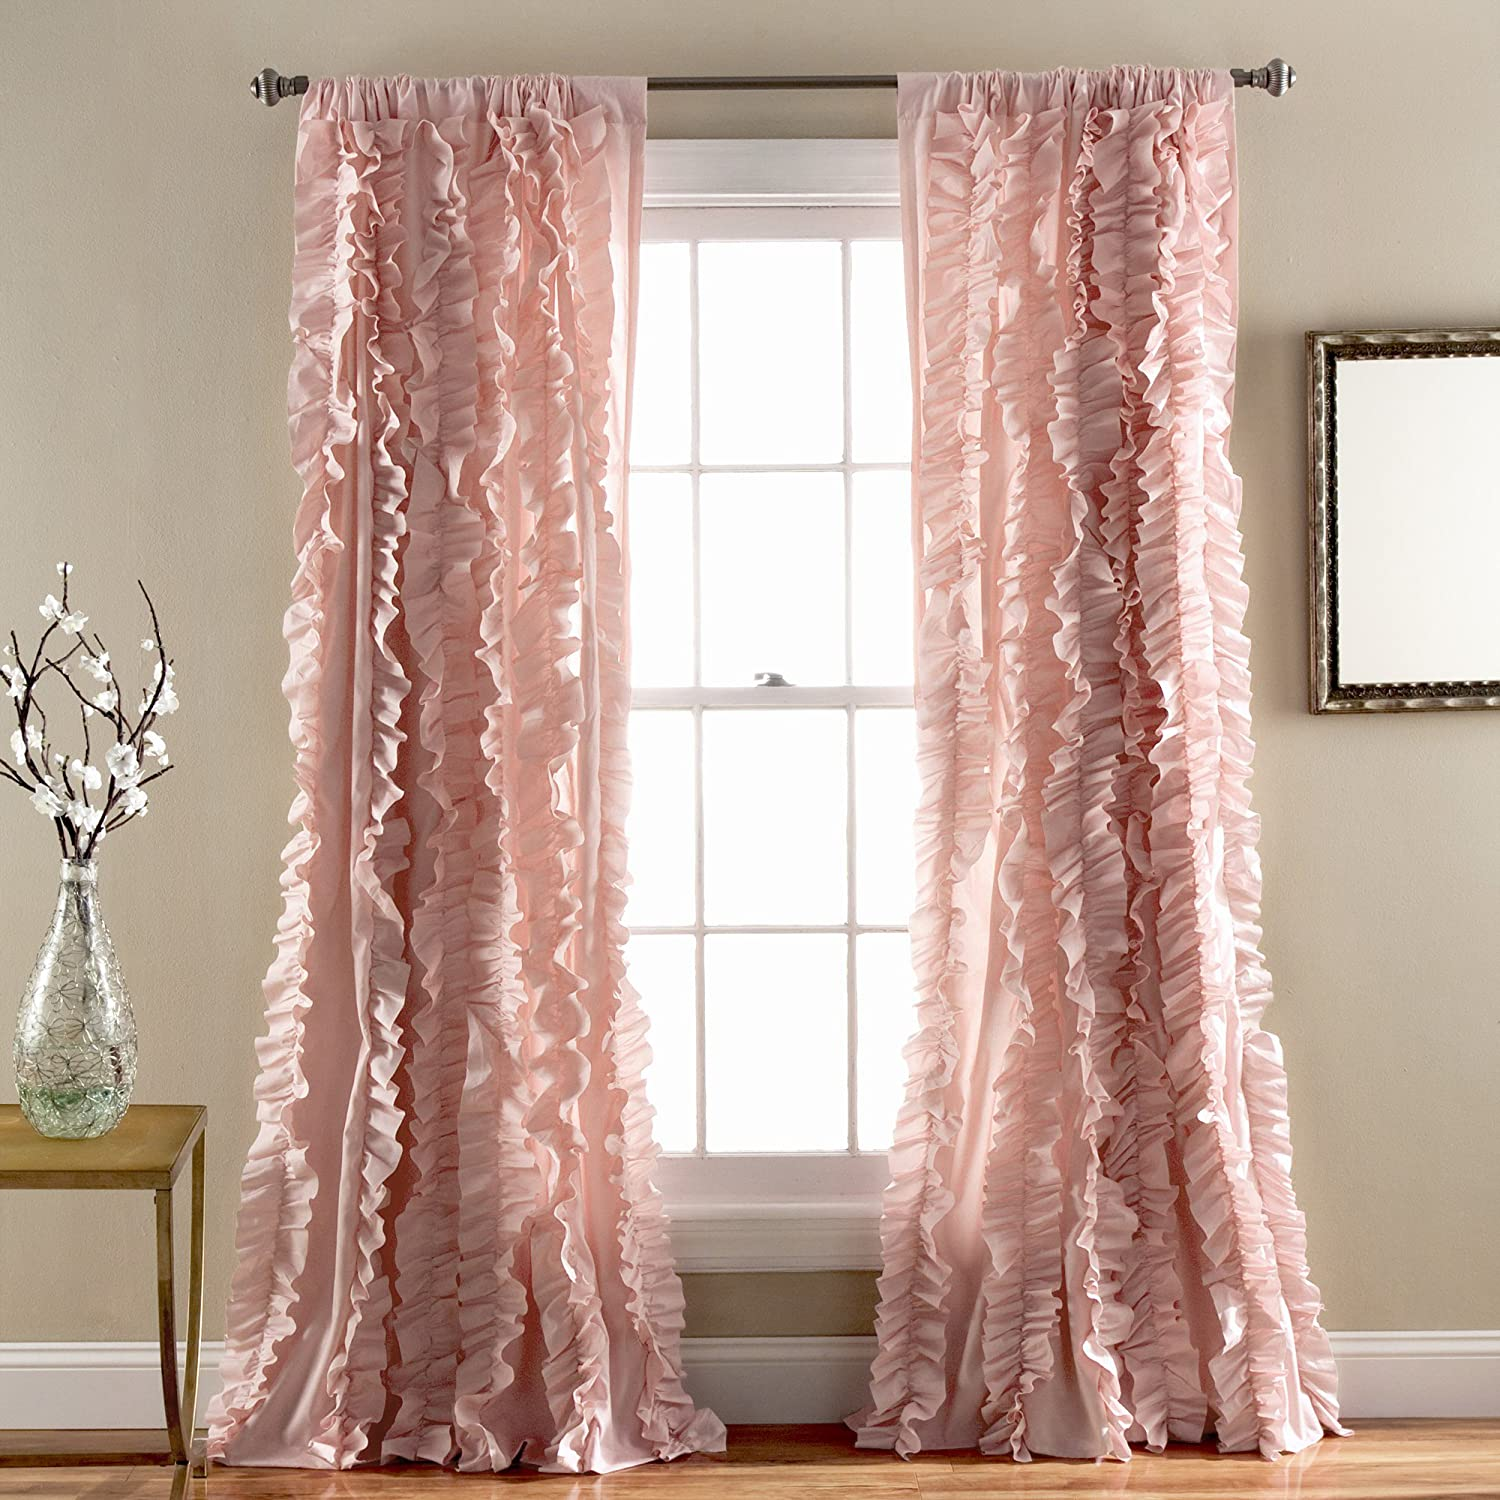 Amazon Lush Decor Belle Window Curtain Panel 84 X 54 Pink Home Kitchen